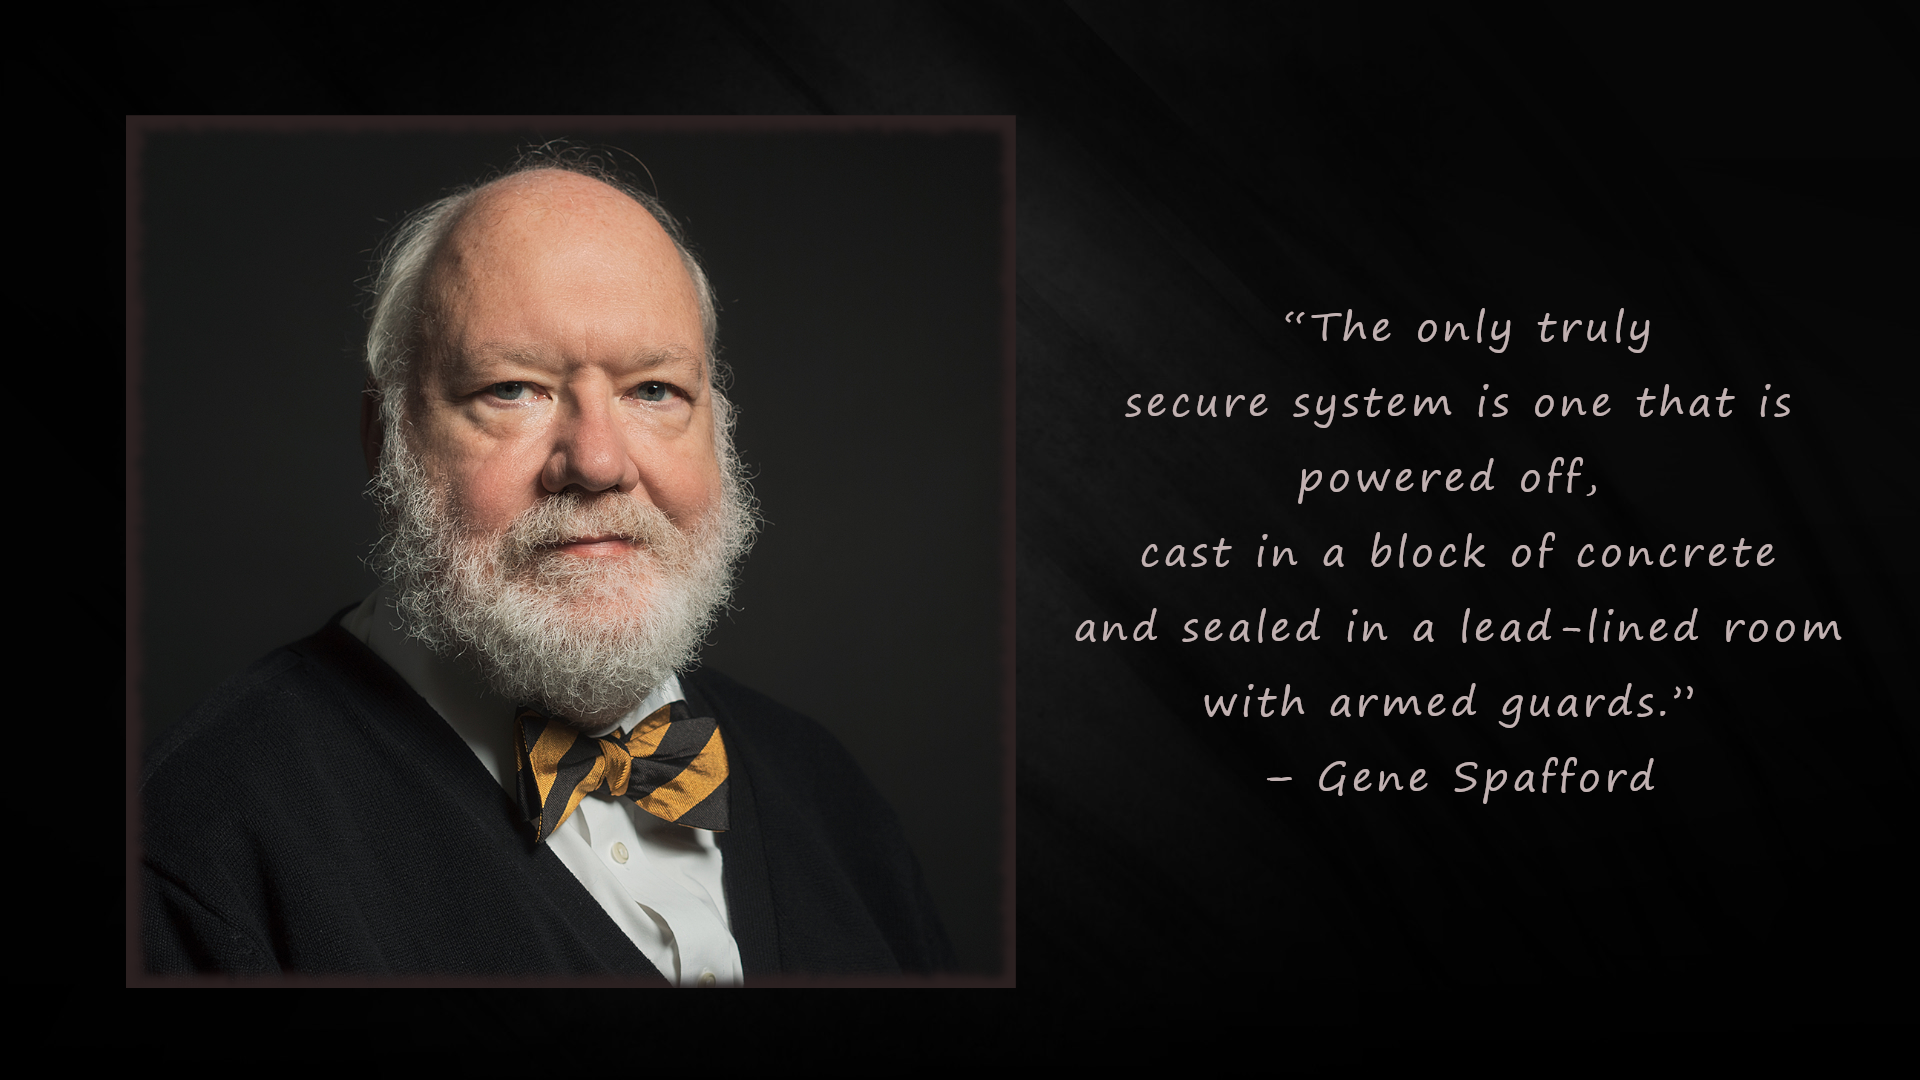 """The only truly secure system is one that is powered off, cast in a block of concrete and sealed in a lead-lined room with armed guards."" – Gene Spafford [1920×1080]"